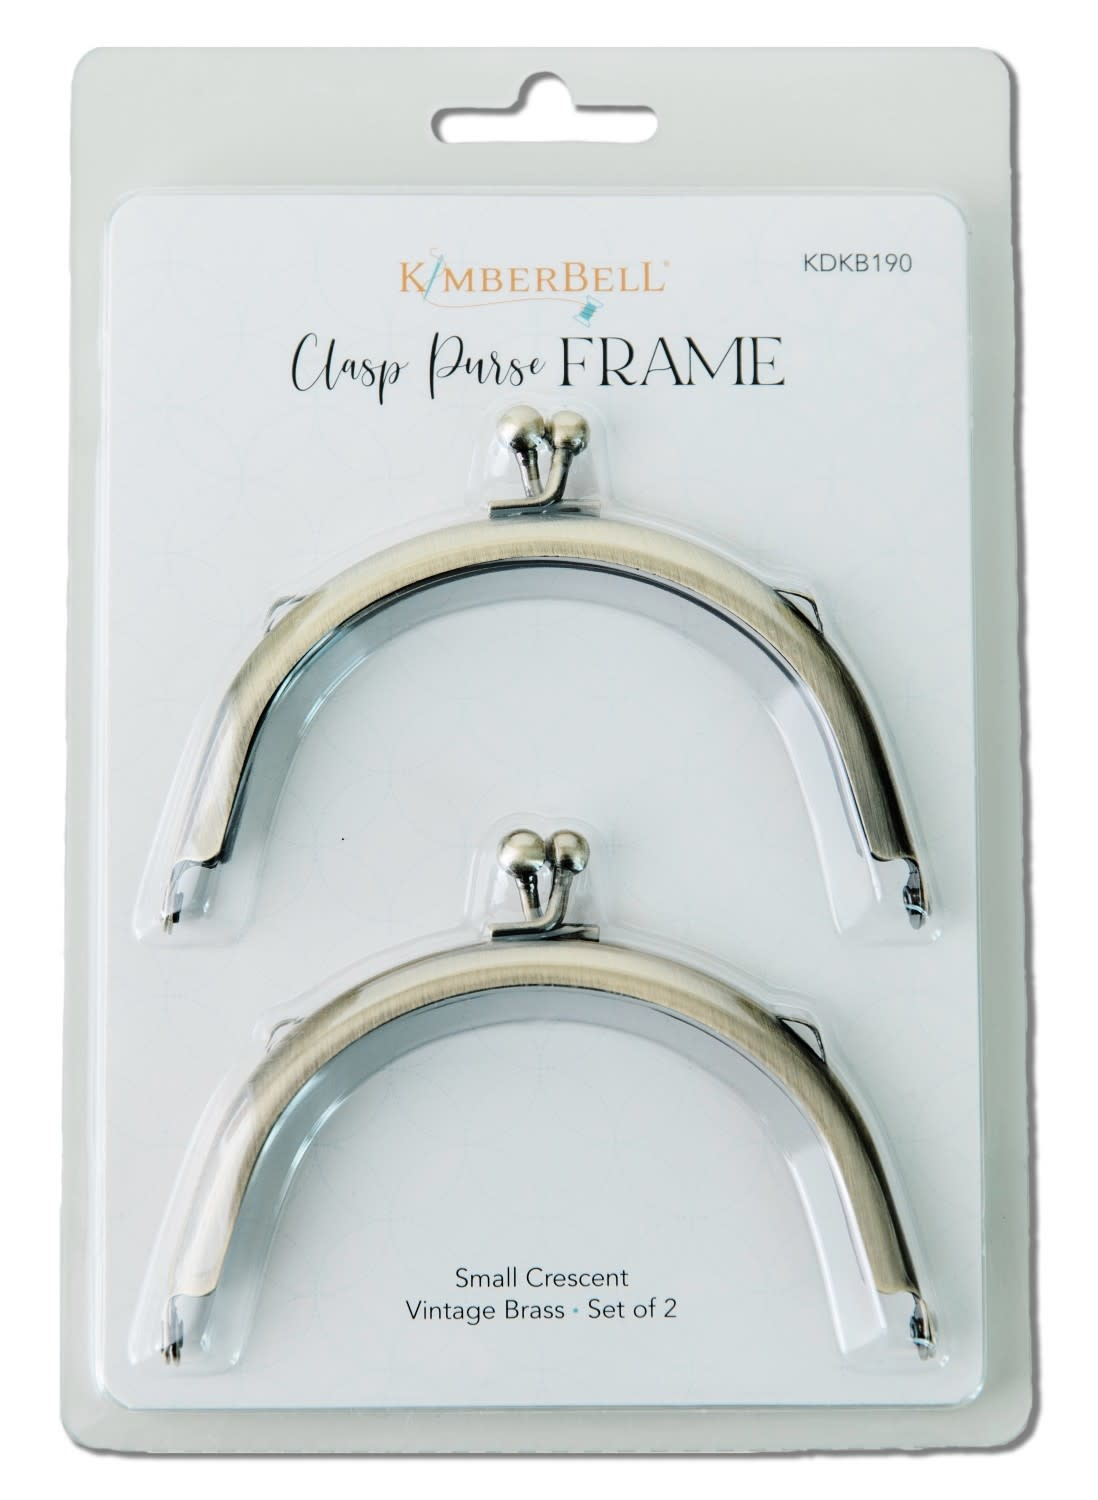 KIMBERBELL DESIGNS Clasp Purse Frame, Small Crescent-Vintage Brass set of 2